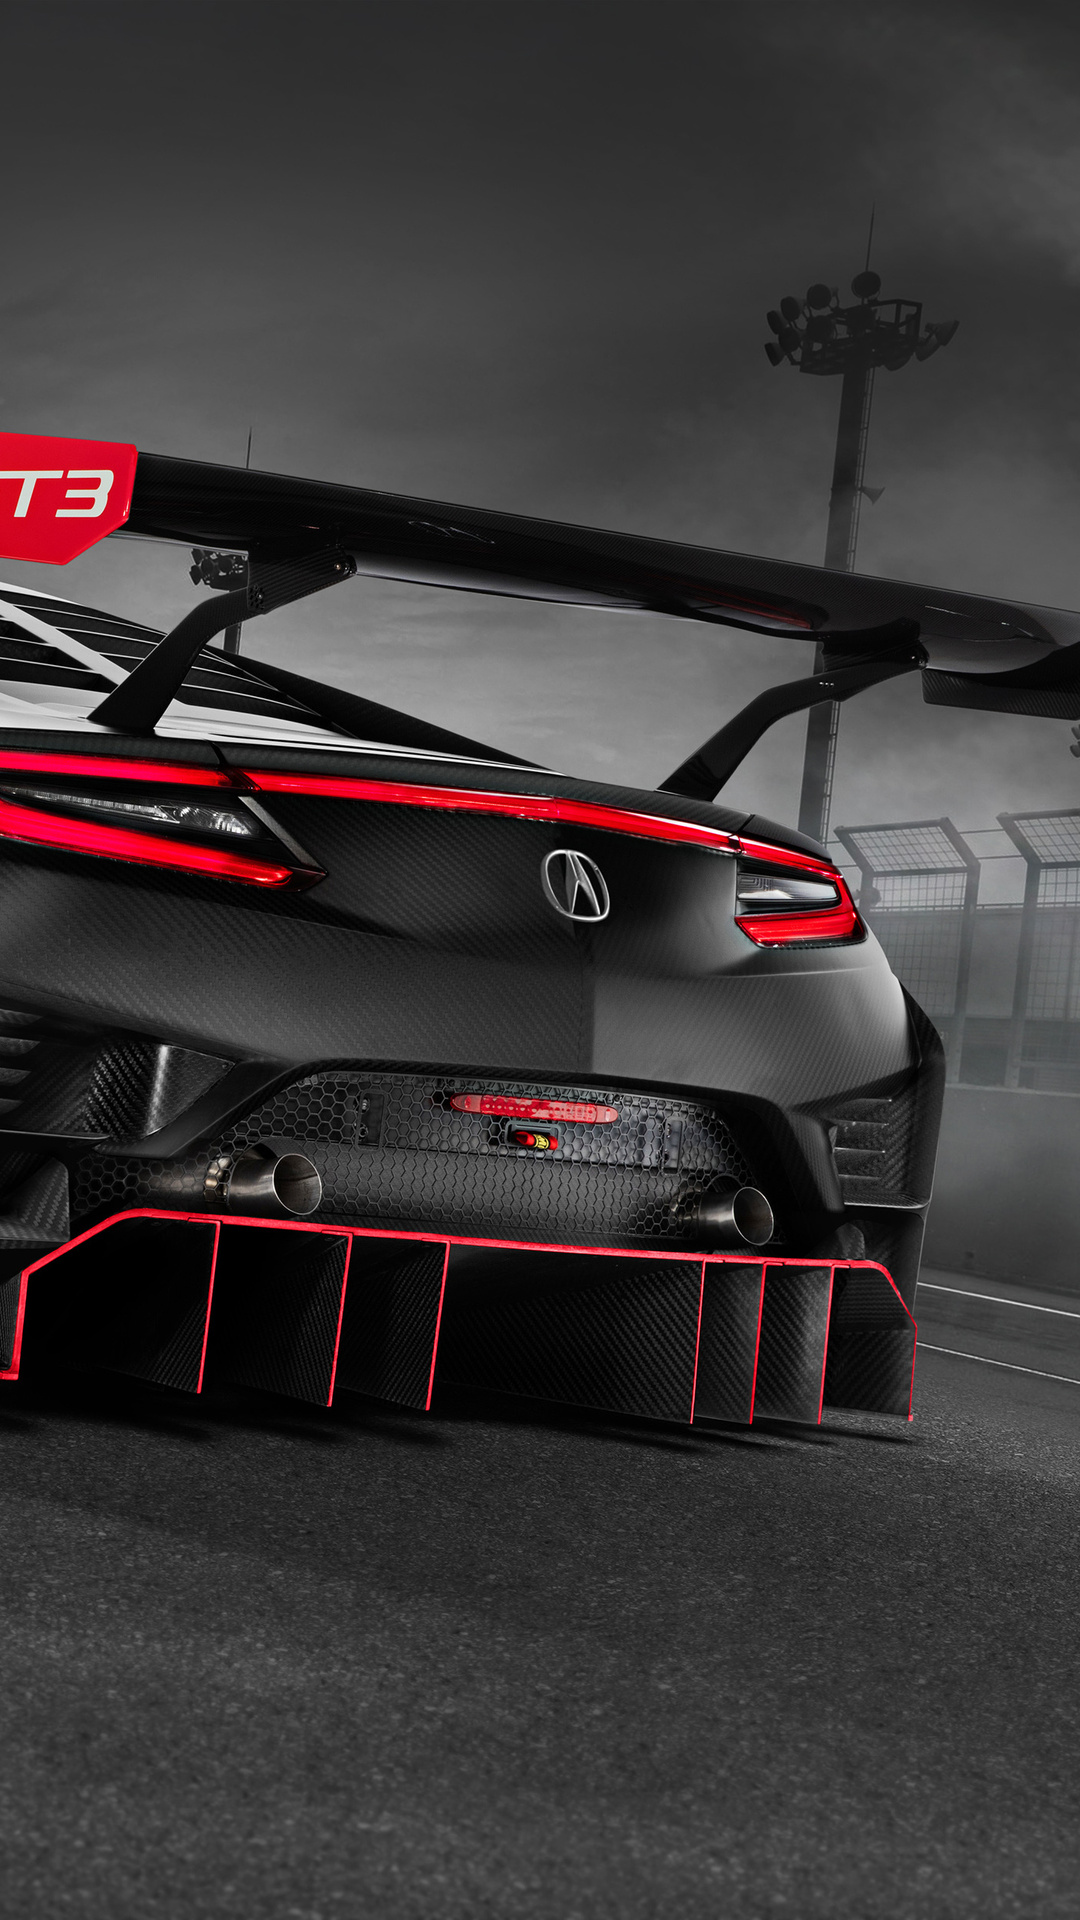 1080x1920 2019 acura nsx gt3 evo iphone 7 6s 6 plus  pixel xl  one plus 3 3t 5 hd 4k wallpapers